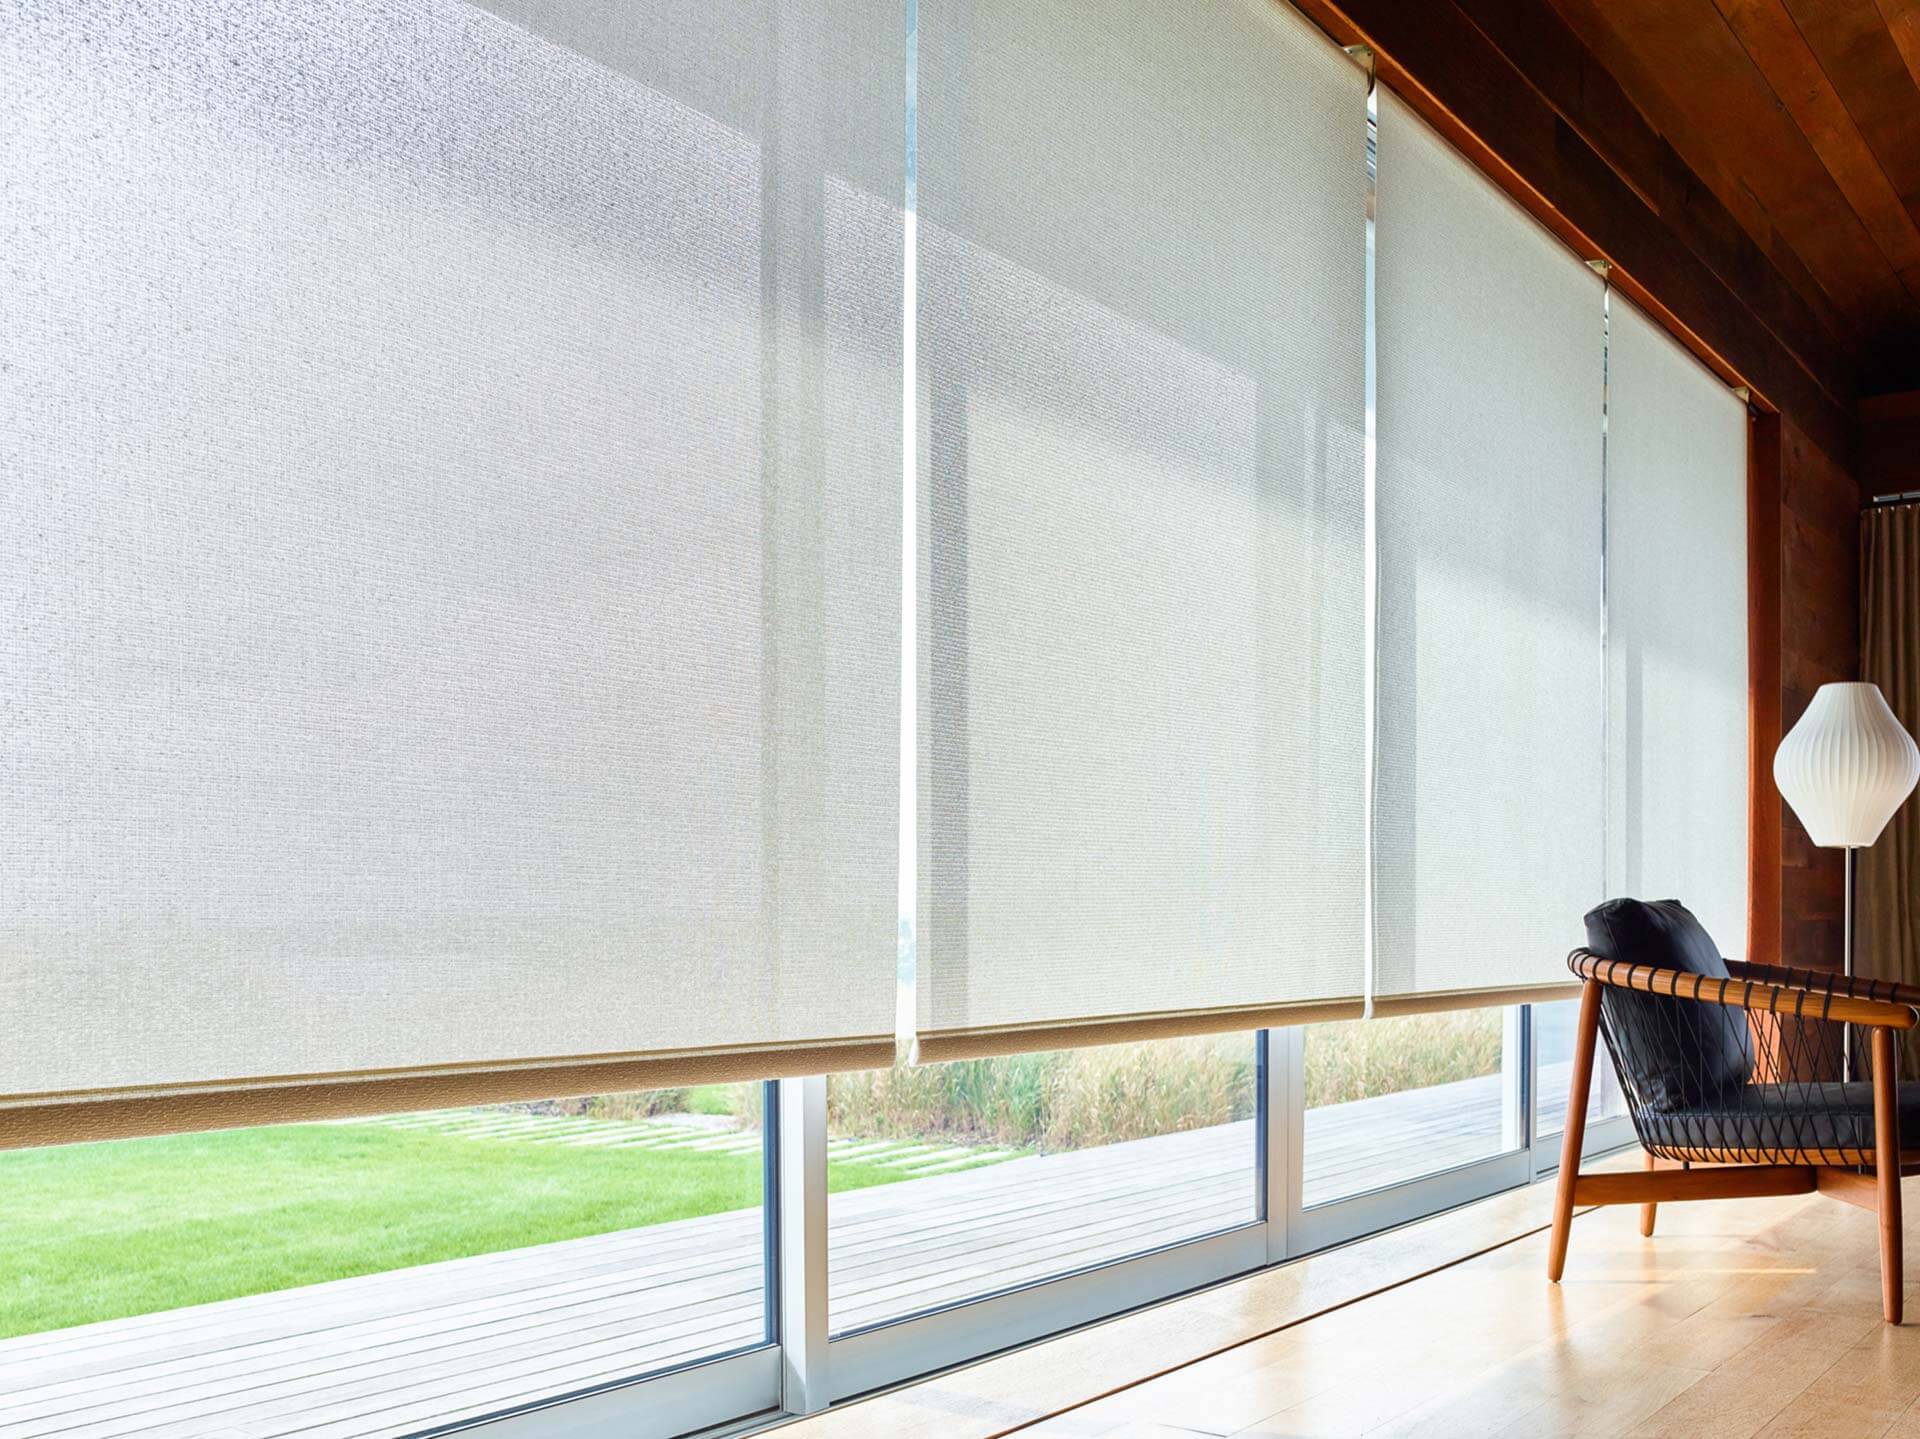 A modern living room featuring Solar Shades from the Shade Store